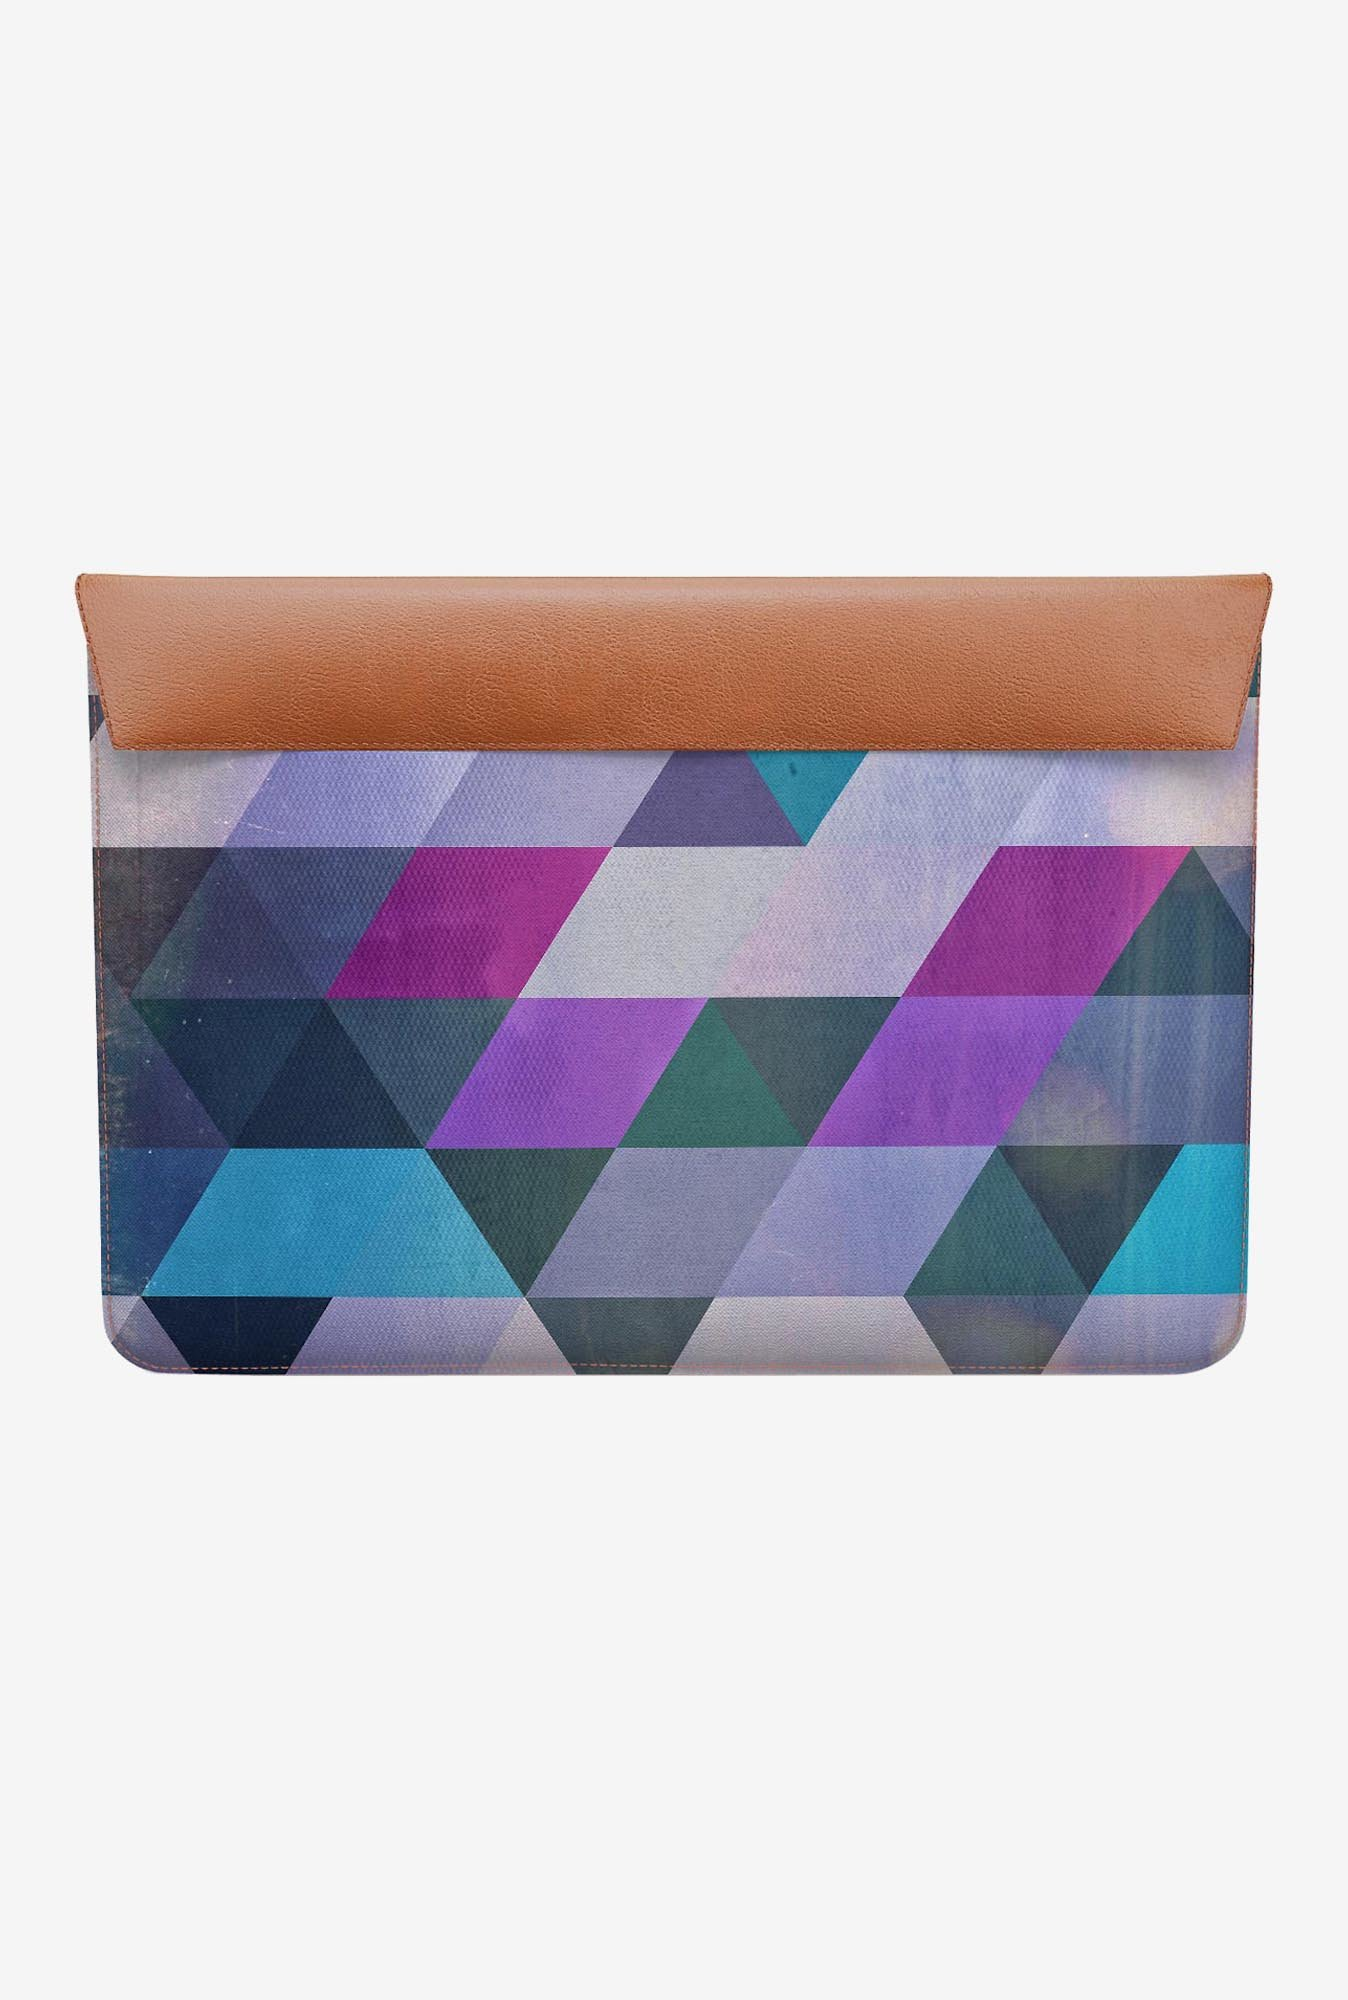 DailyObjects flyty MacBook Air 11 Envelope Sleeve